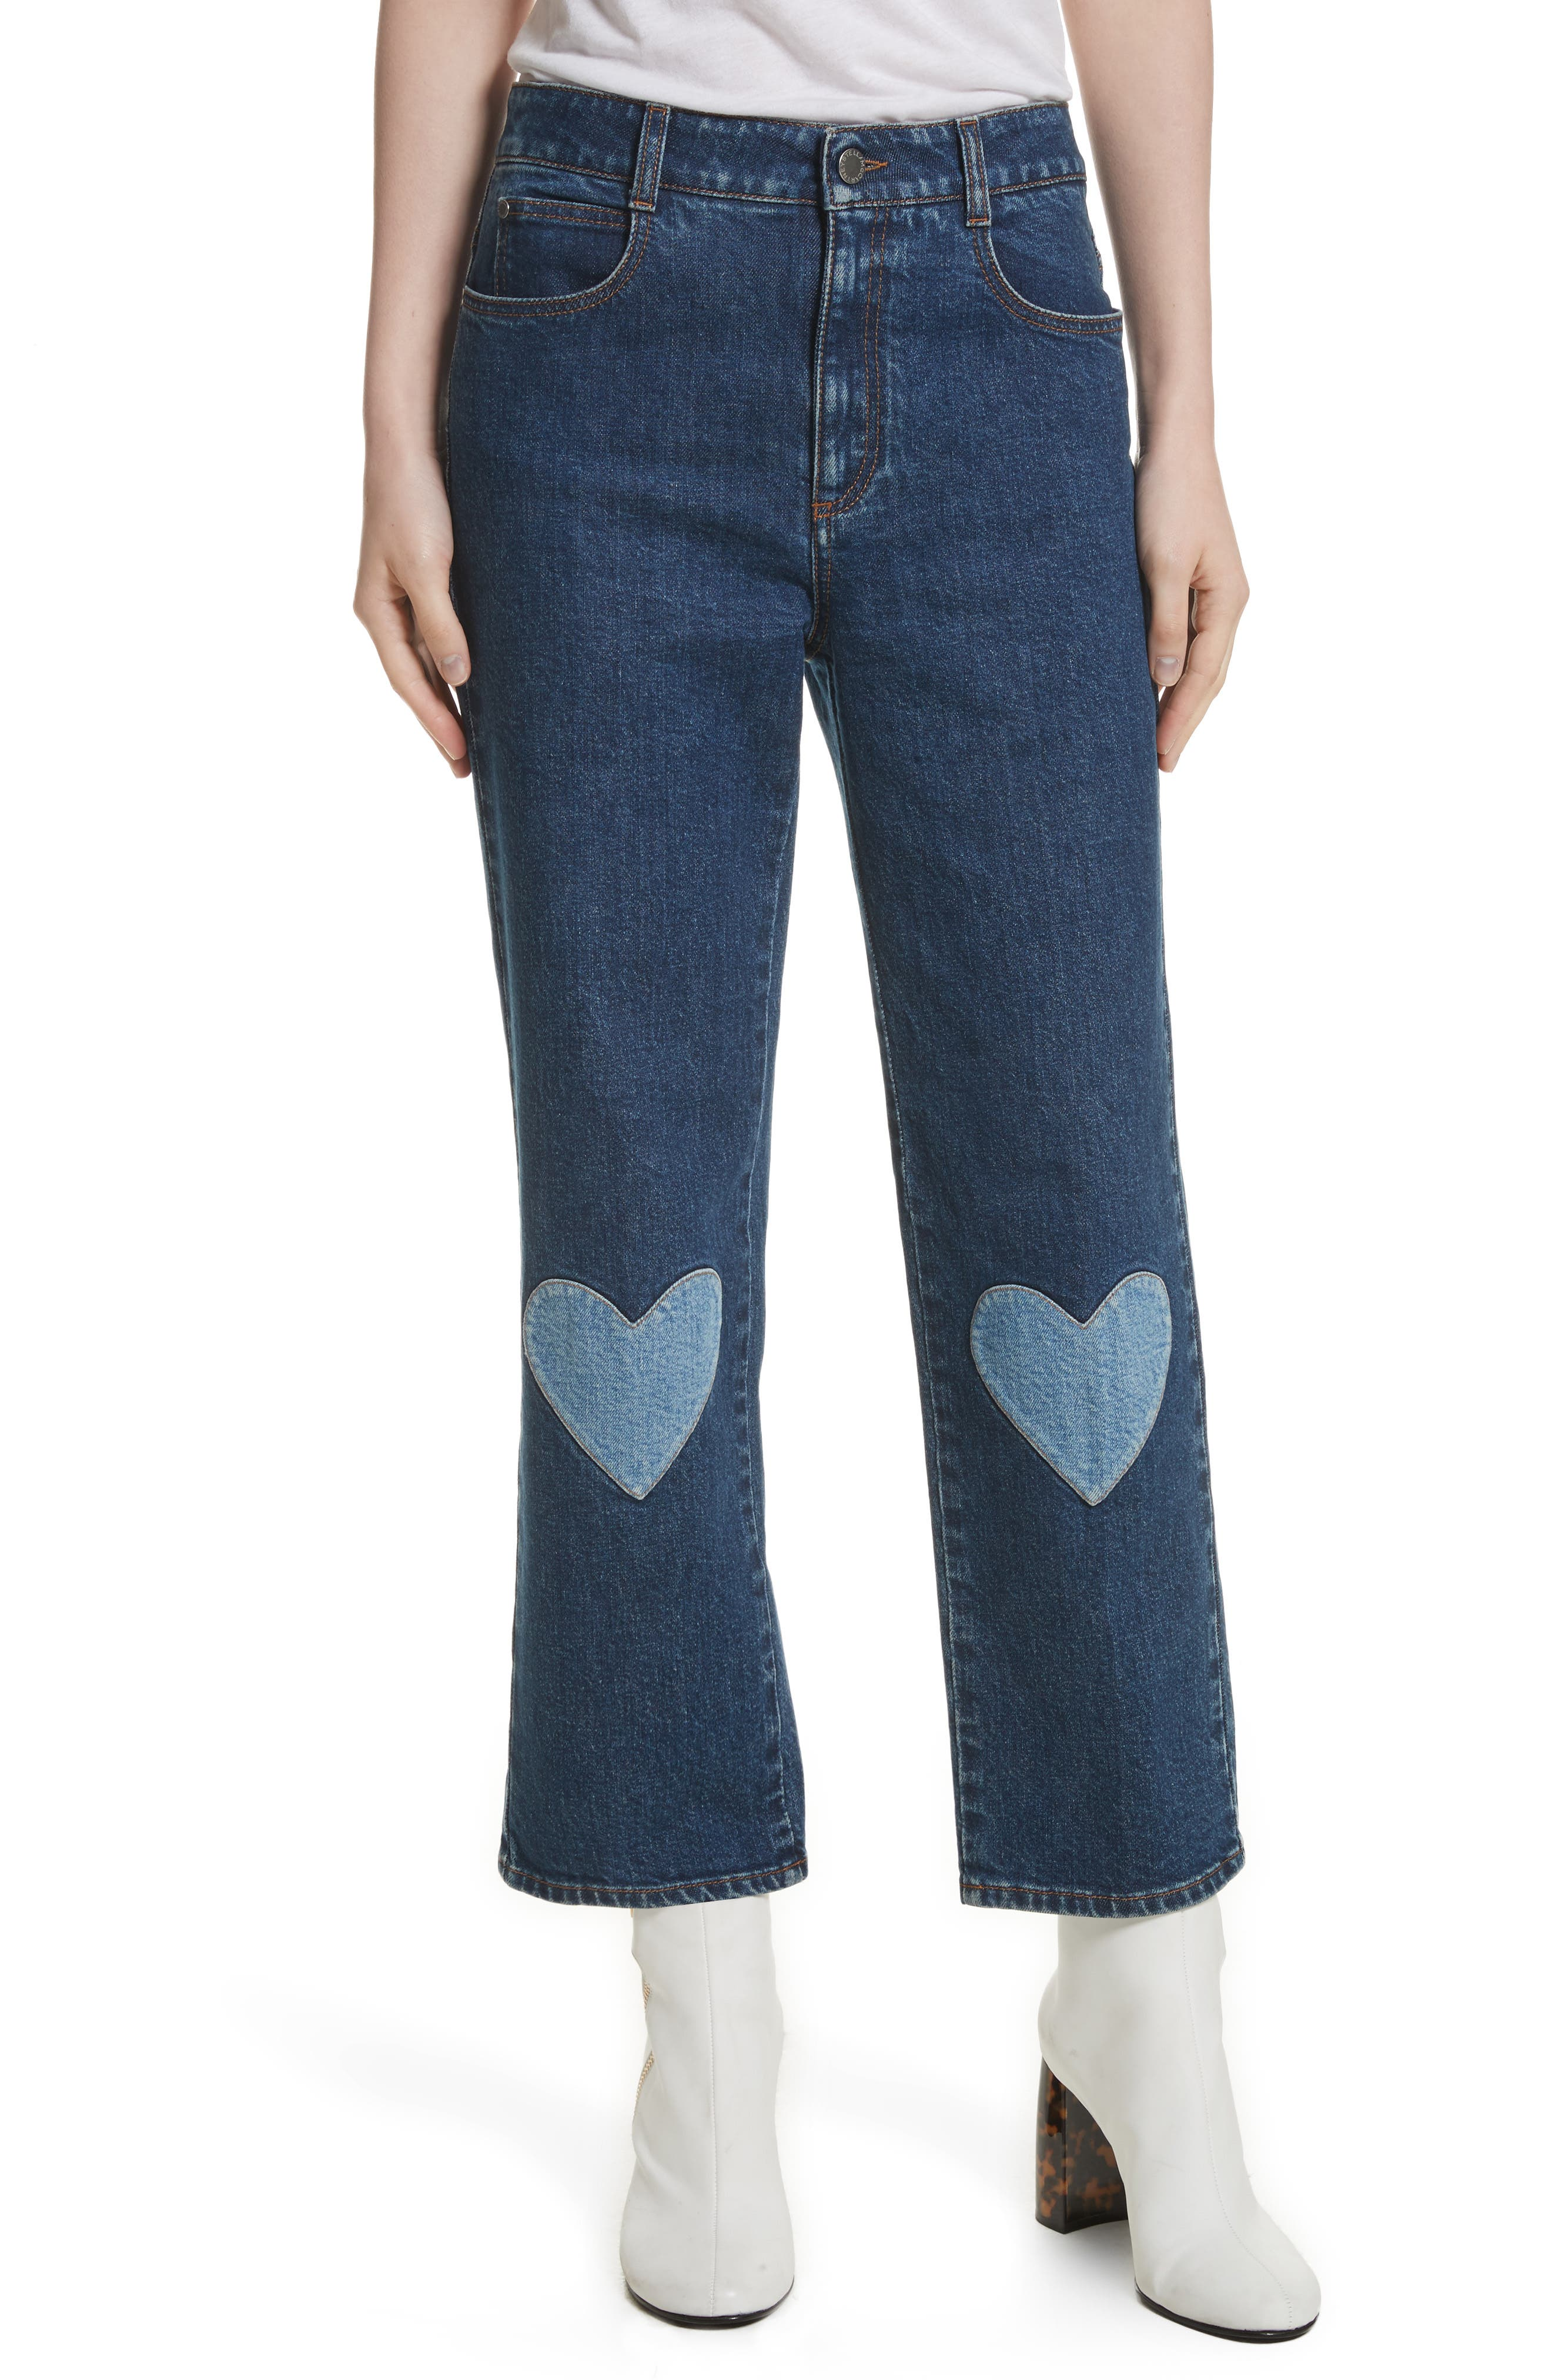 Alternate Image 1 Selected - Stella McCartney Heart Patch High Waist Crop Jeans